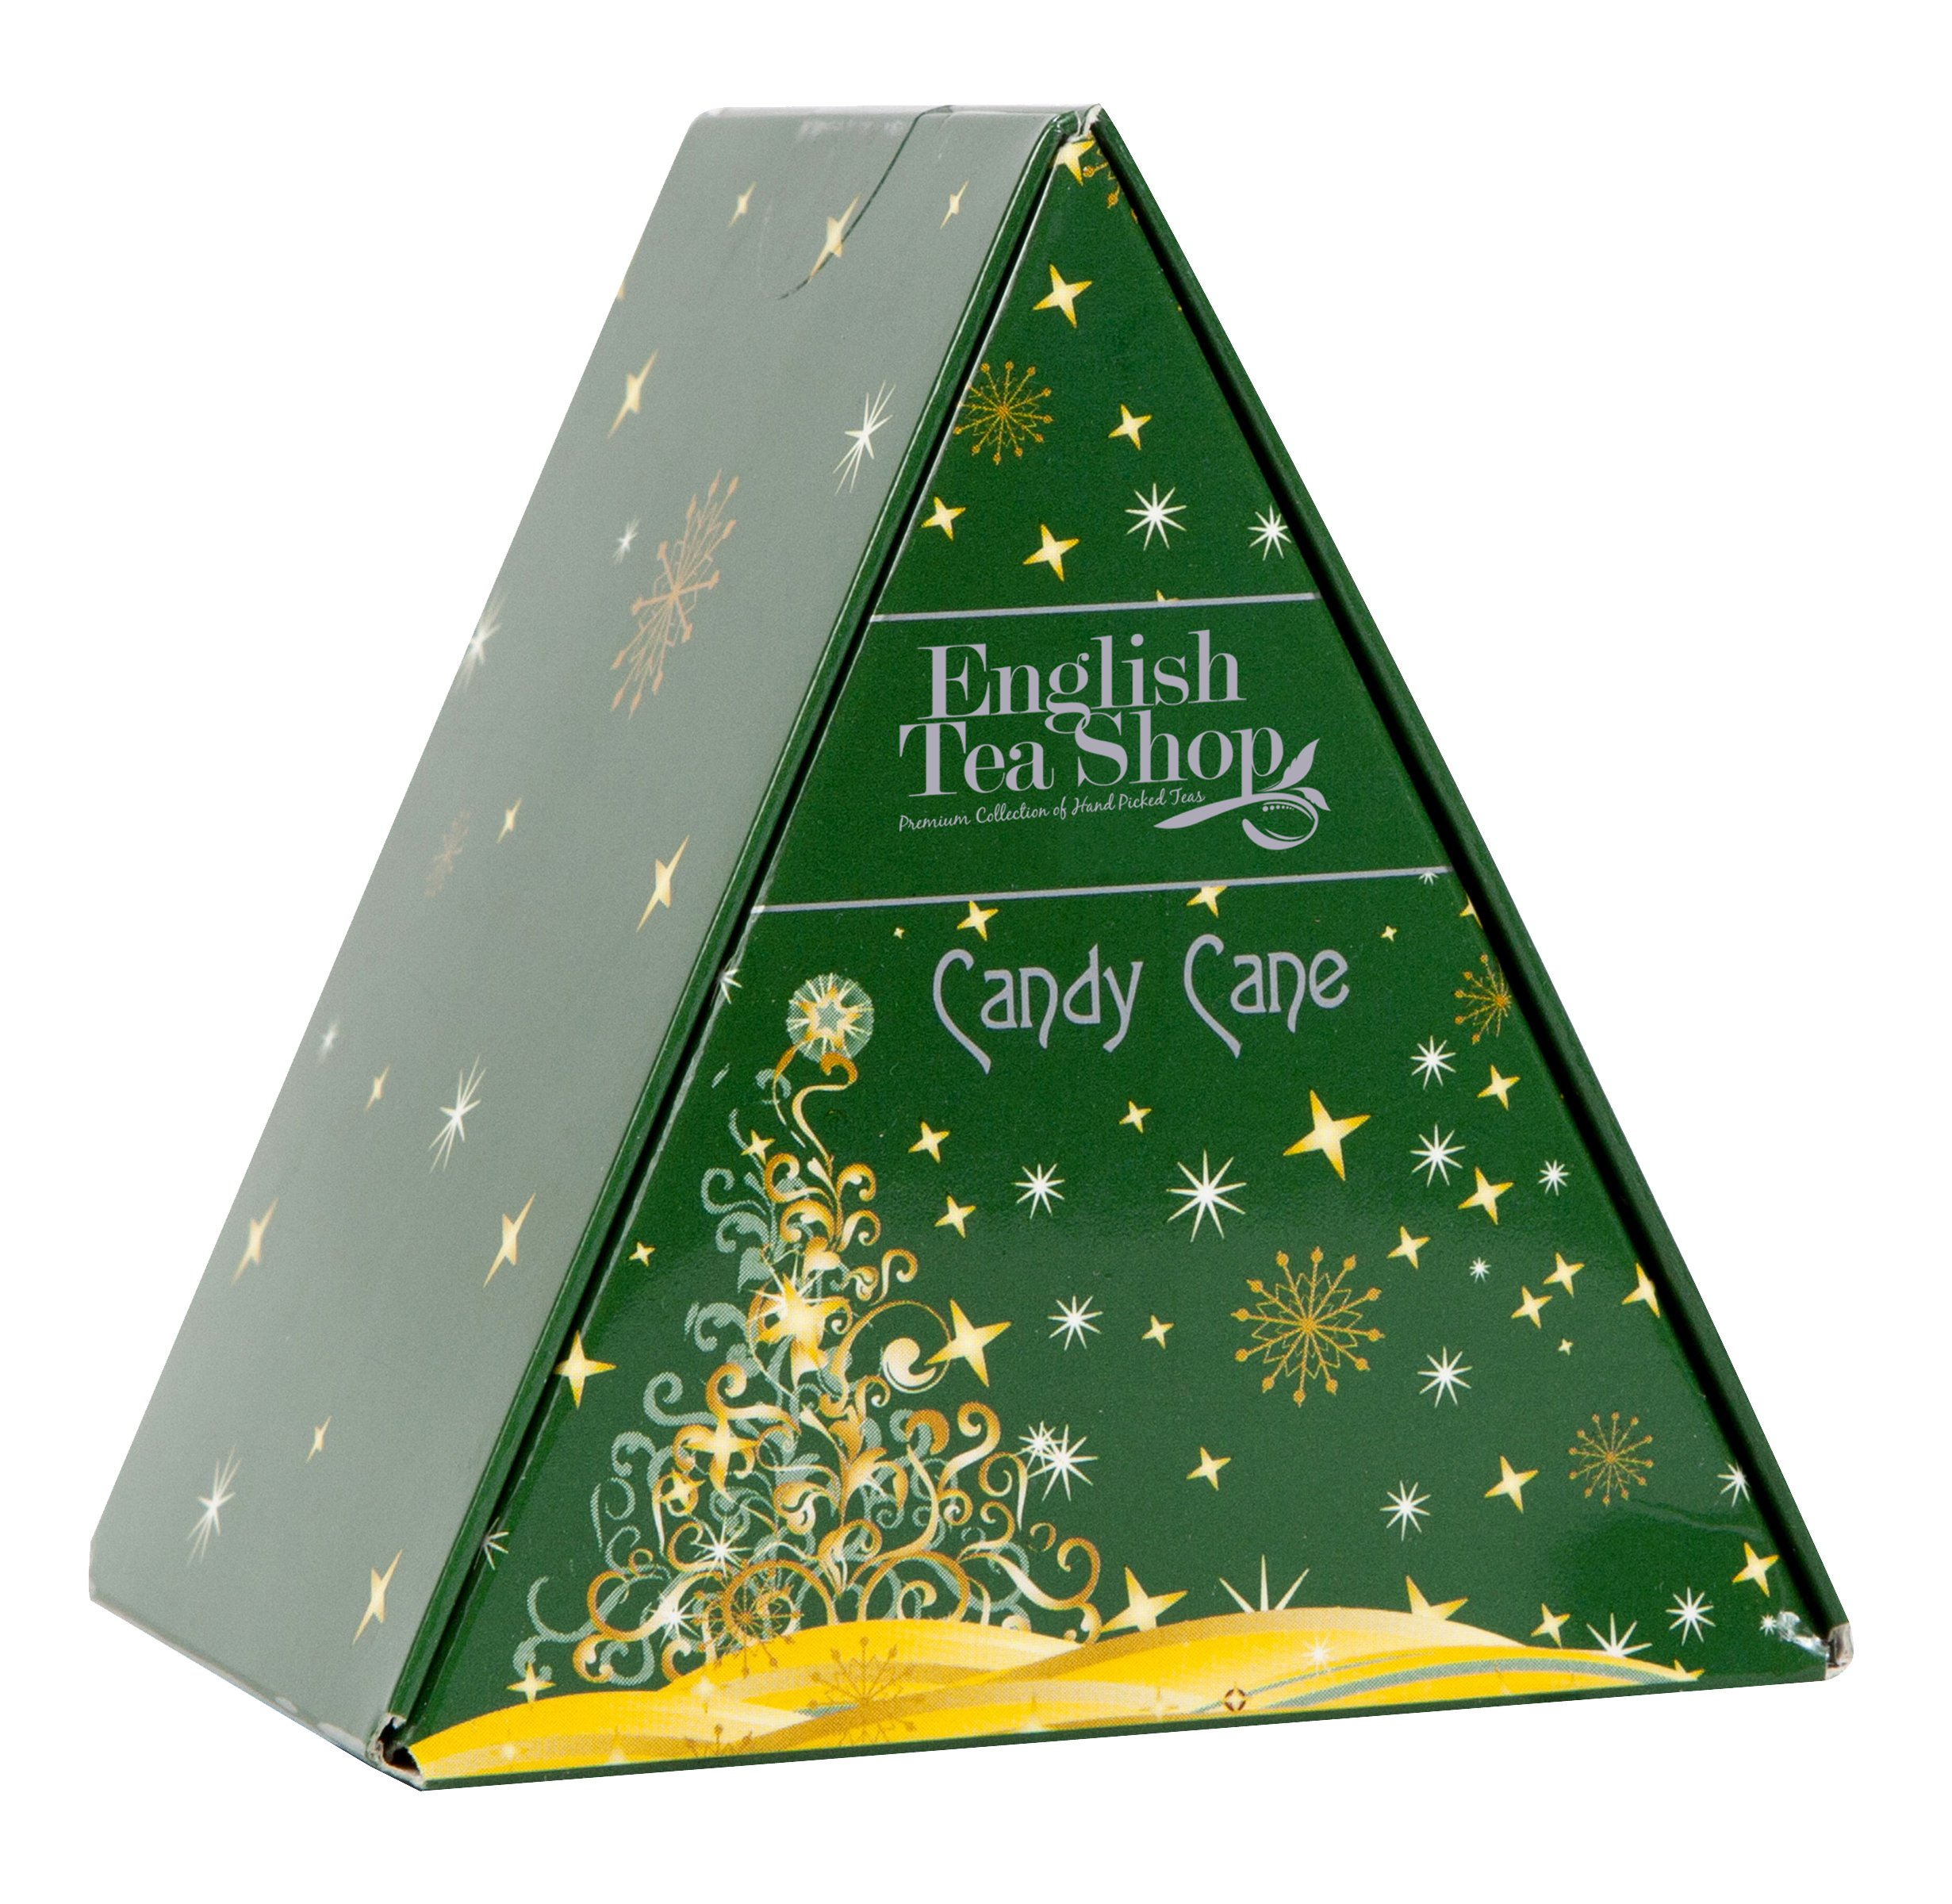 English Tea Shop Candy Cane Nylon Pyramid, 12 Gram